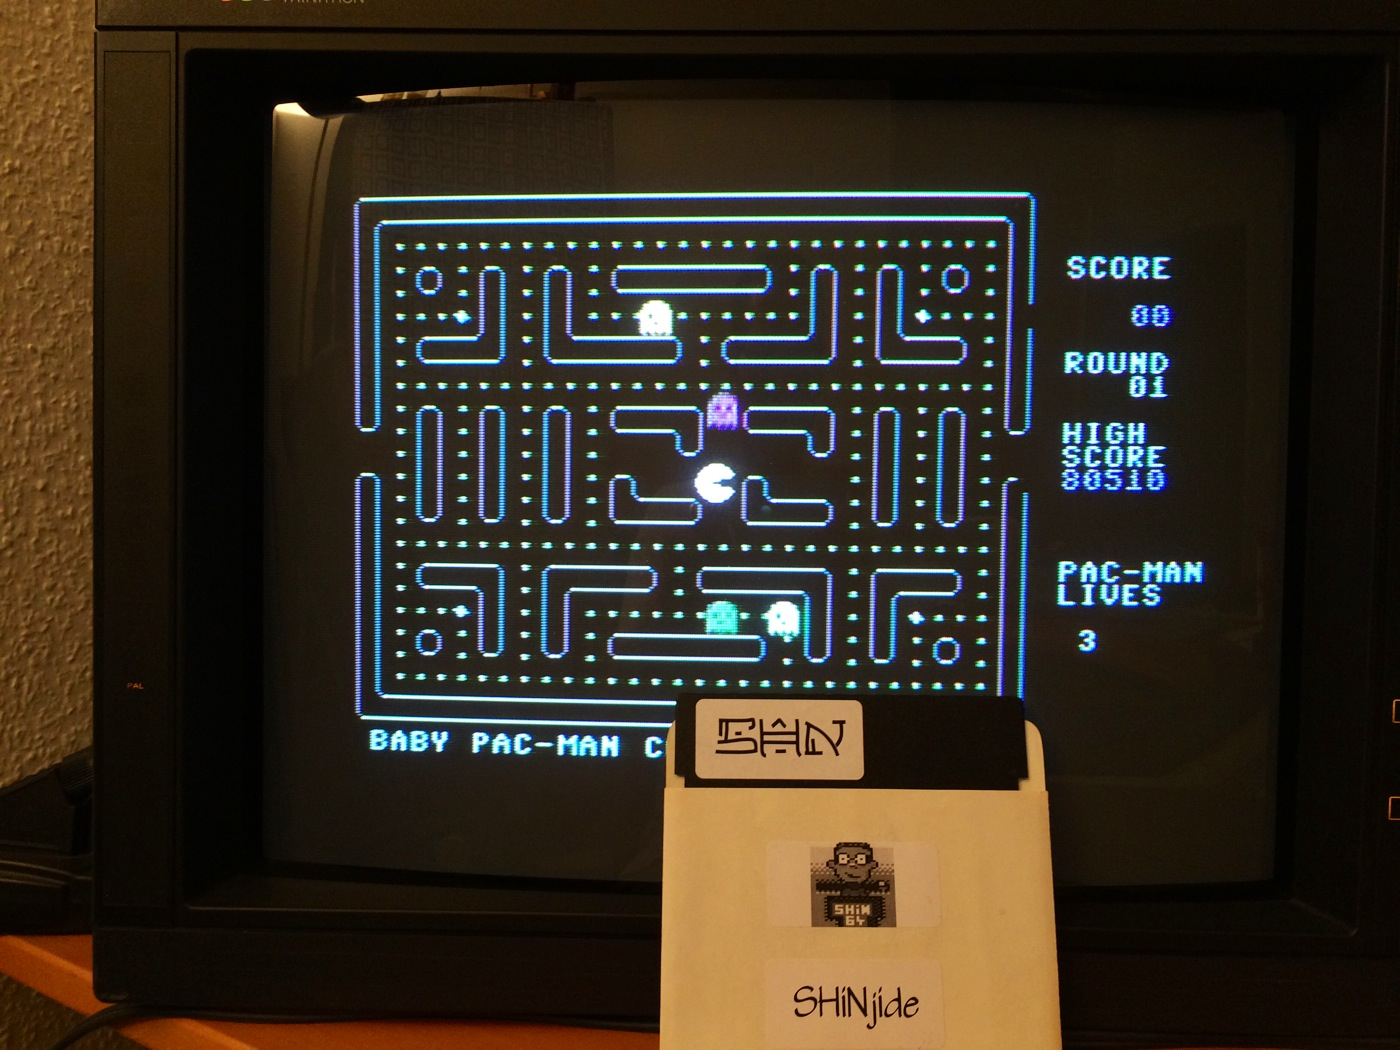 SHiNjide: Baby Pac-Man (Commodore 64) 80,510 points on 2014-07-08 13:33:16